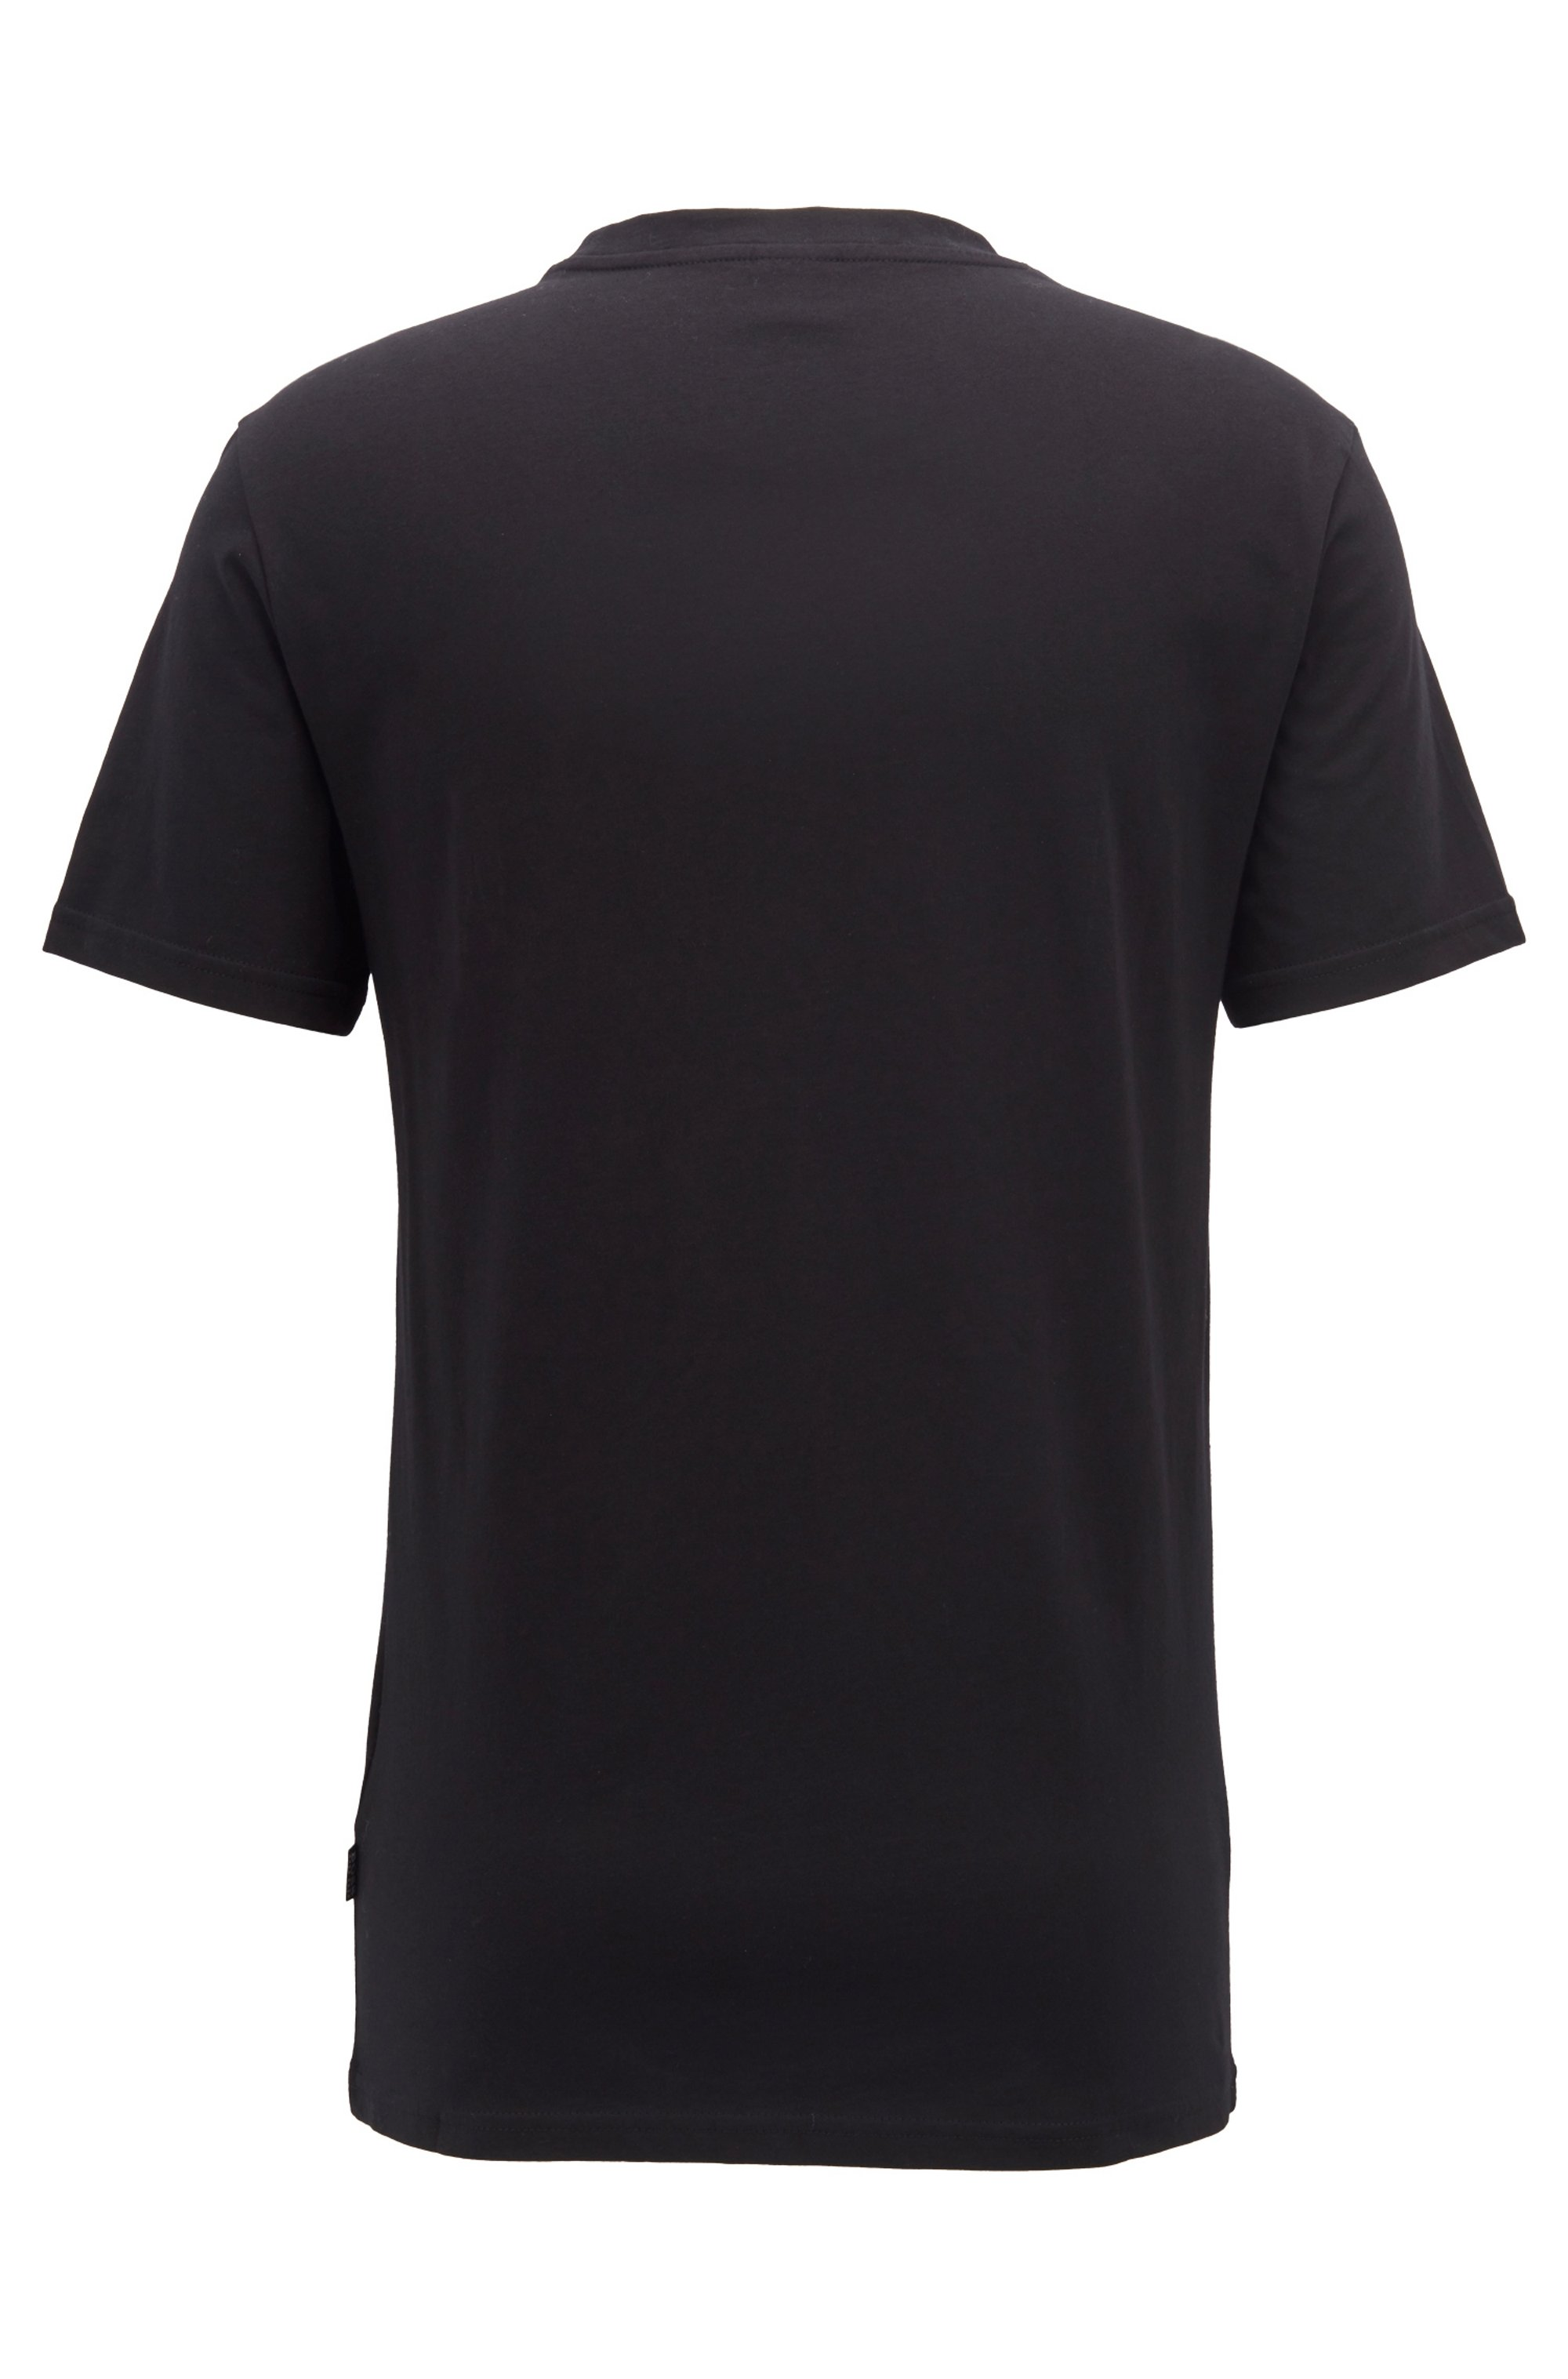 Relaxed-fit cotton T-shirt with UV protection